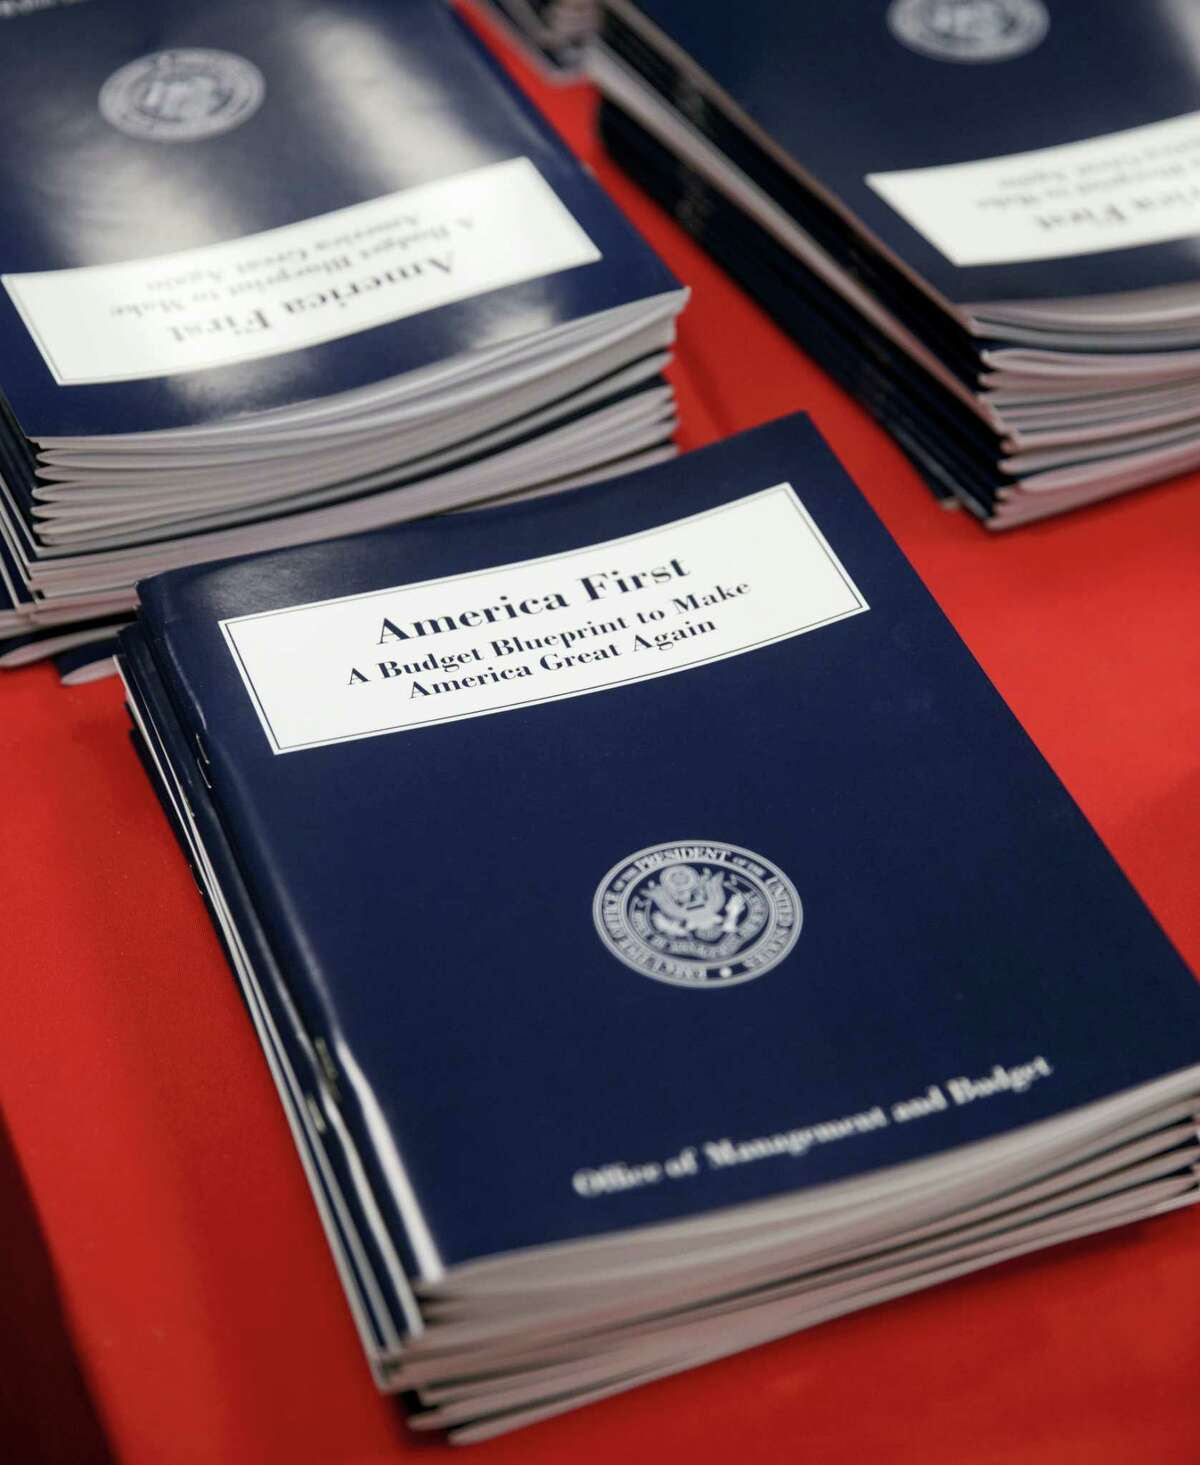 Copies of President Donald Trump's first budget are displayed at the Government Printing Office in Washington, Thursday, March, 16, 2017. Trump unveiled a $1.15 trillion budget on Thursday, a far-reaching overhaul of federal government spending that slashes many domestic programs to finance a significant increase in the military and make a down payment on a U.S.-Mexico border wall.